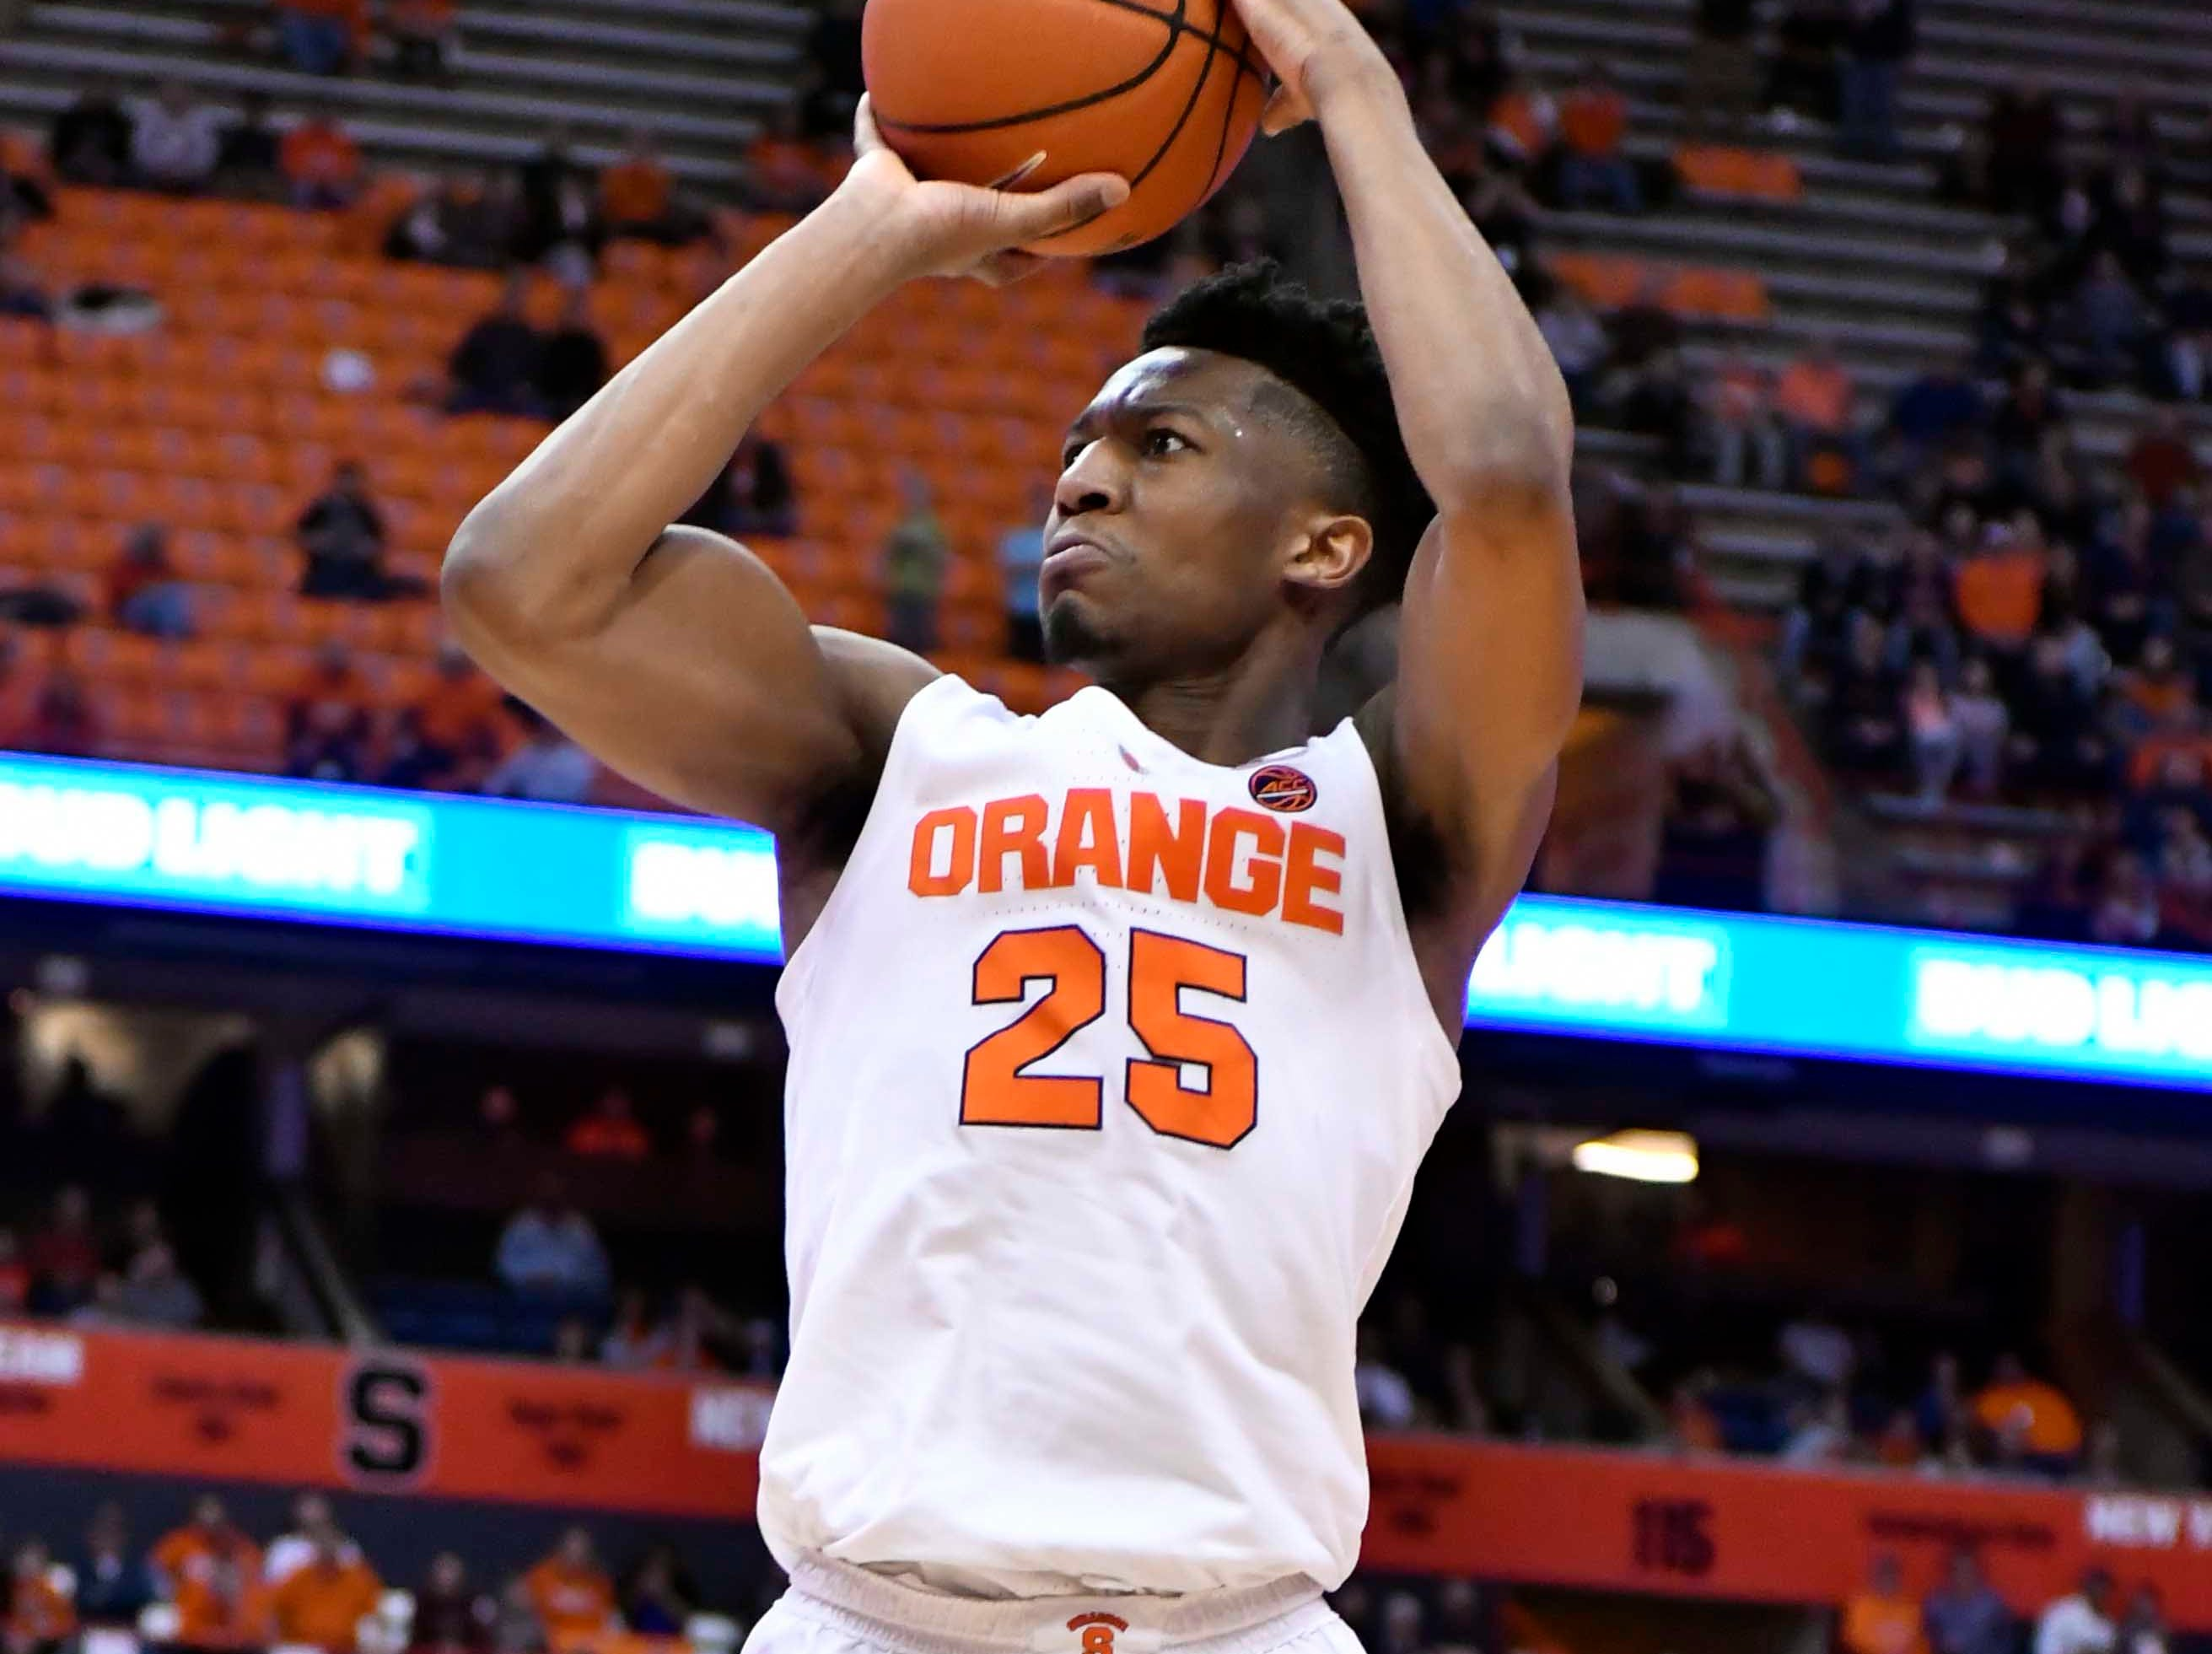 Feb 5, 2019; Syracuse, NY, USA;Syracuse Orange guard Tyus Battle (25) pulls up for a jump shot in the second against the Syracuse Orange half at the Carrier Dome. Mandatory Credit: Mark Konezny-USA TODAY Sports